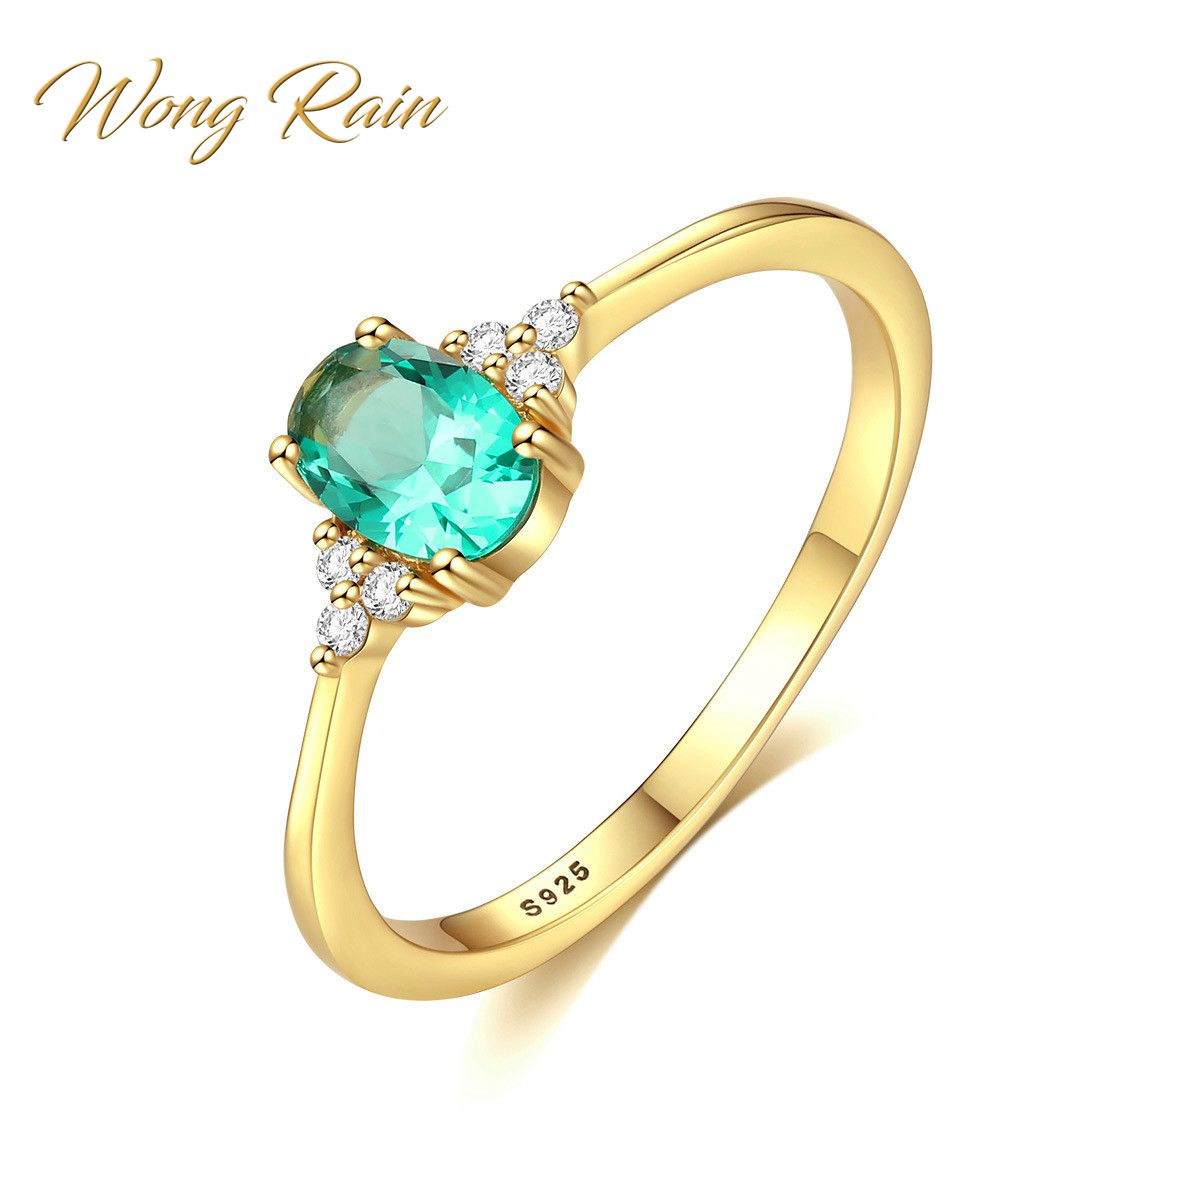 Wong Rain Vintage 925 Solid Sterling Silver Emerald Gemstone Wedding Engagement Diamonds Yellow Gold Ring Fine Jewelry Wholesale